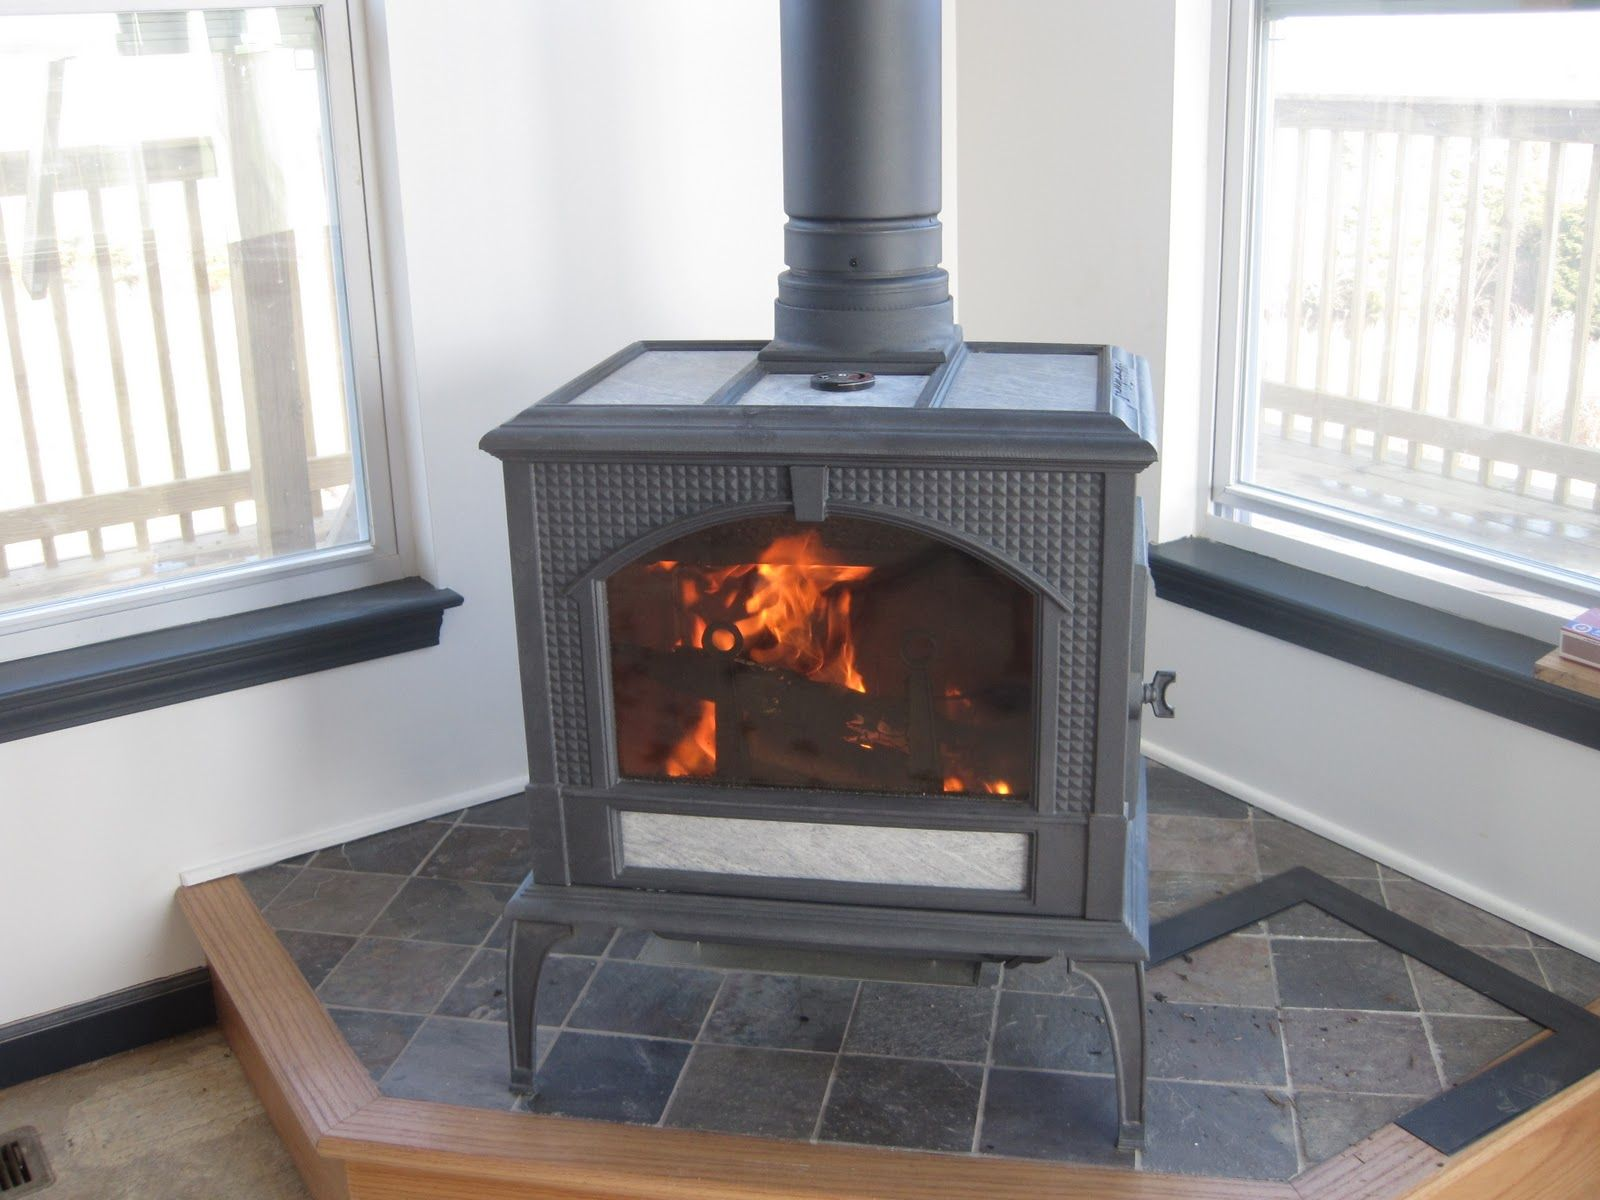 Good Warm Fire Not The Scary Bad Kind Soapstone Wood Stove Wood Stove Fireplace Wood Stove